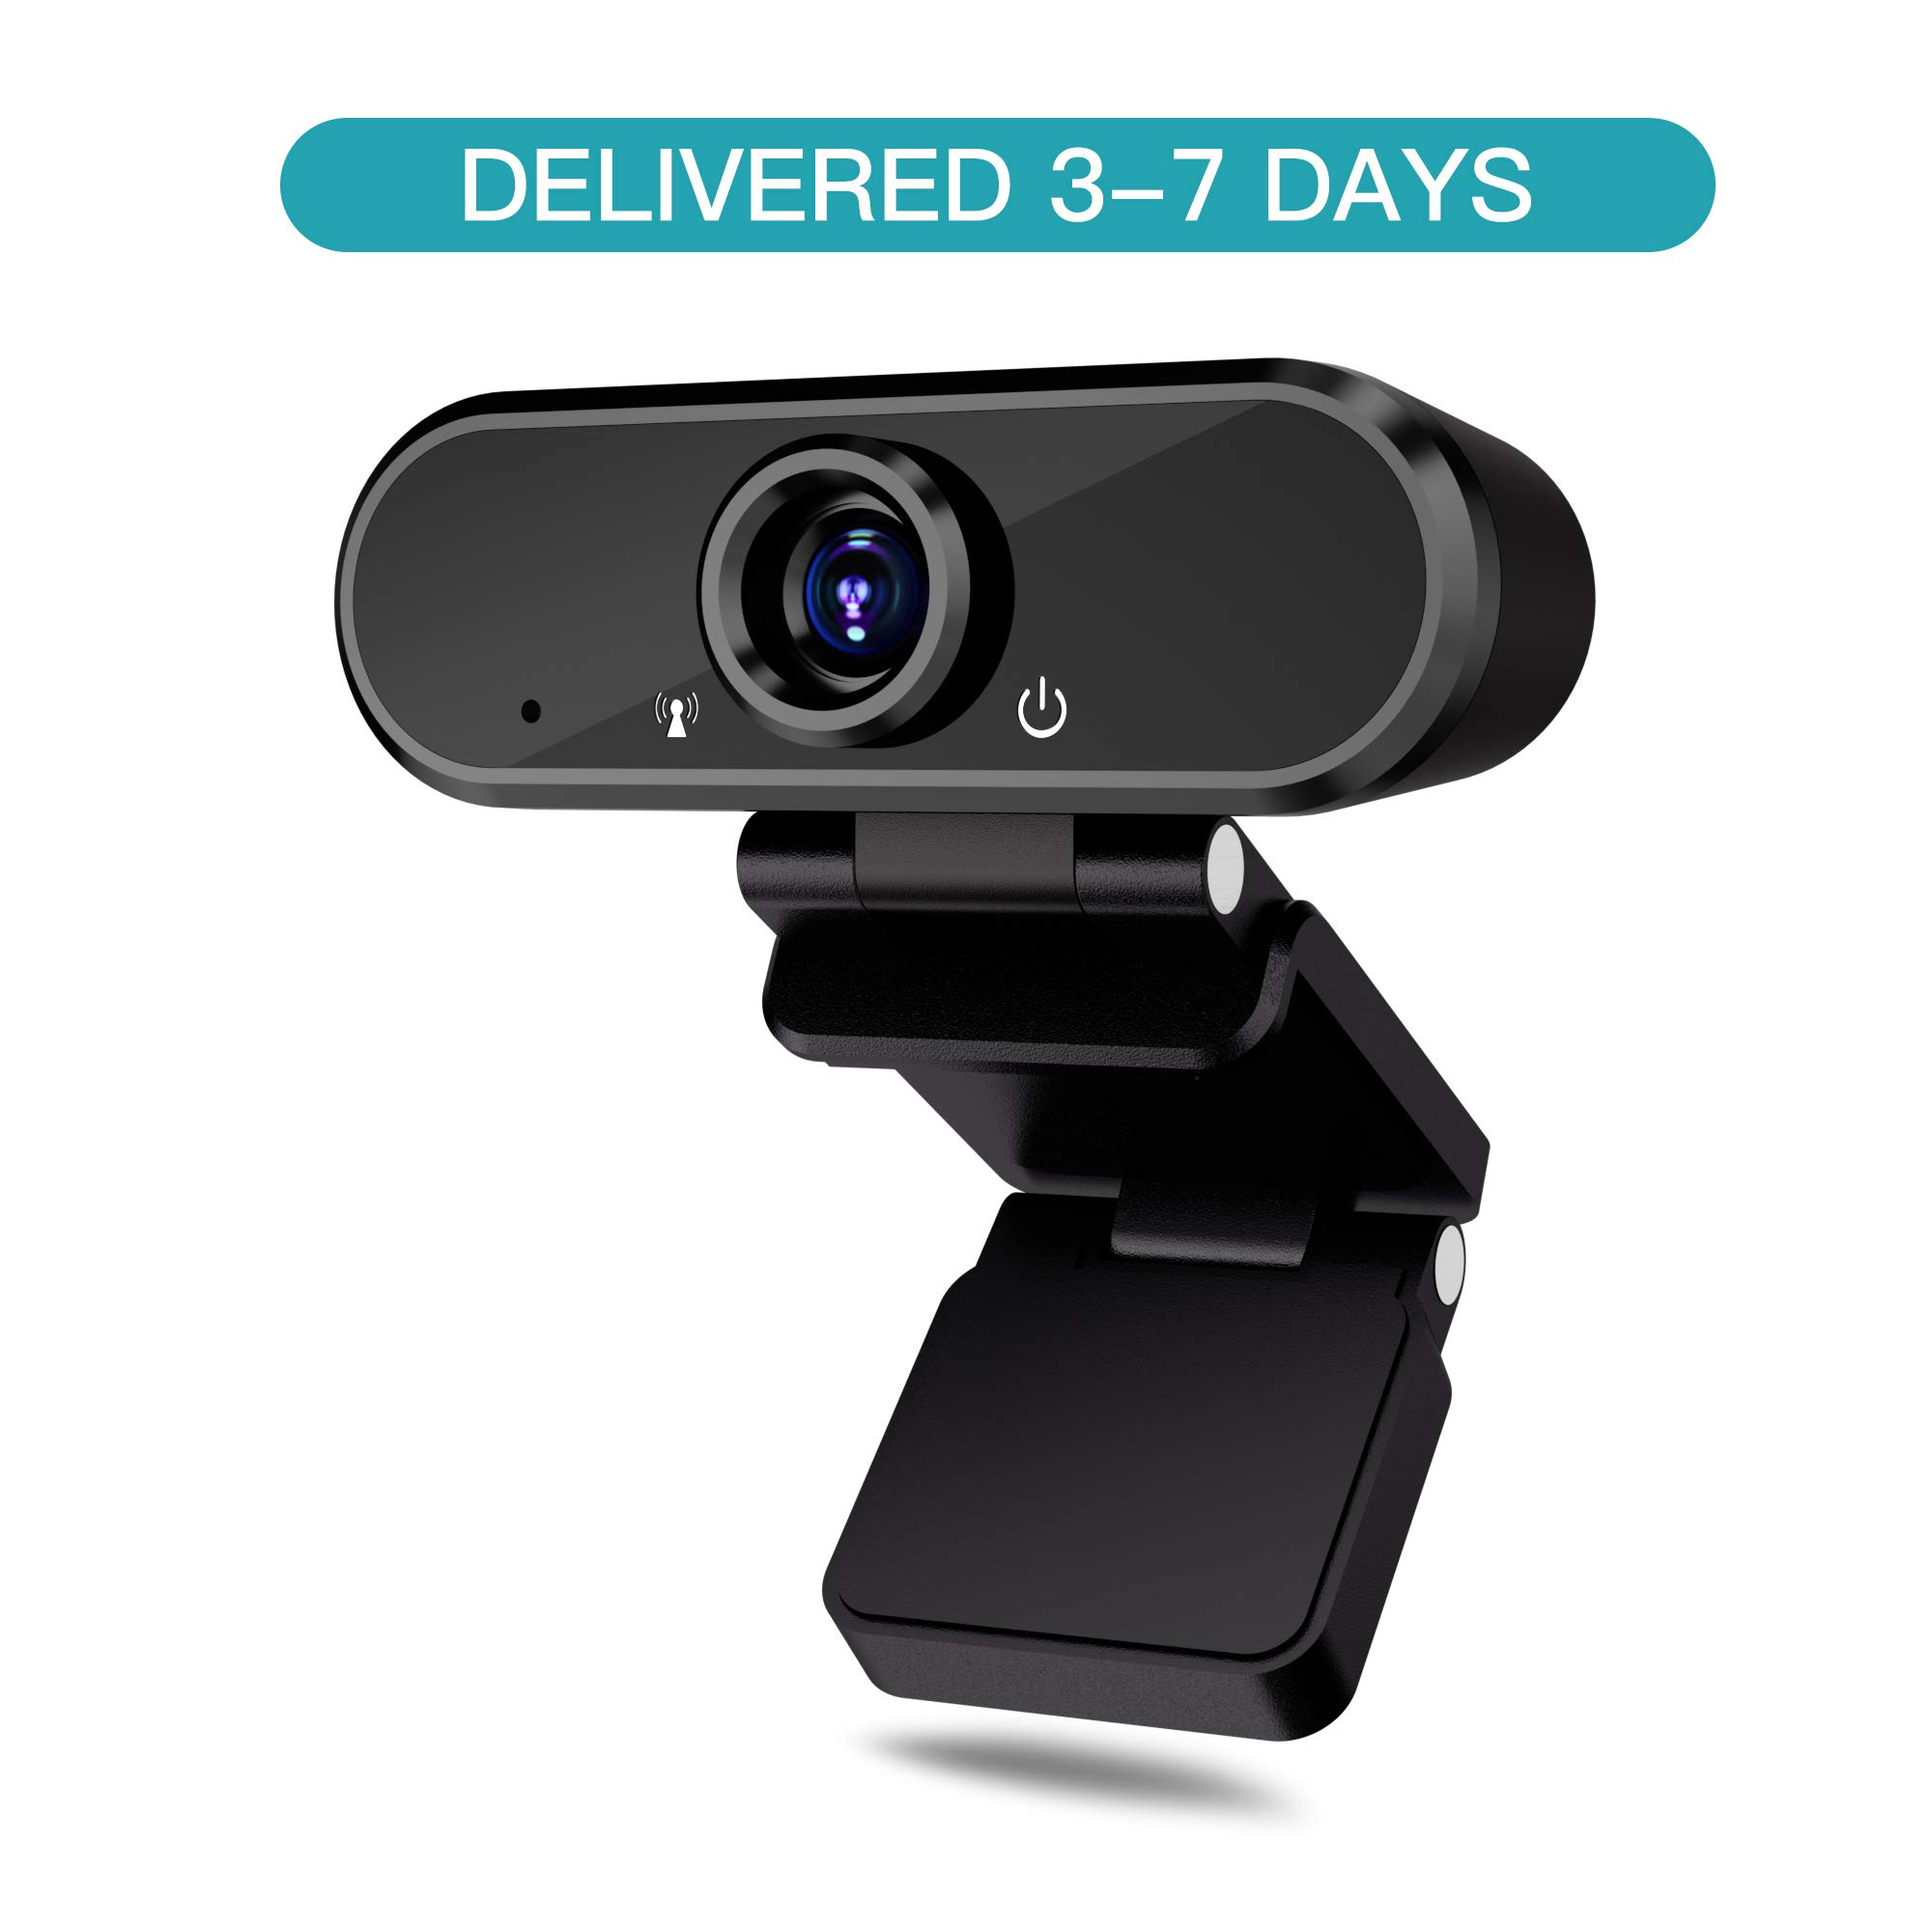 Hd Webcam With Microphone 1080p Web Camera For Video Calling Conferencing Recording Pc Laptop Desktop Usb Webcams